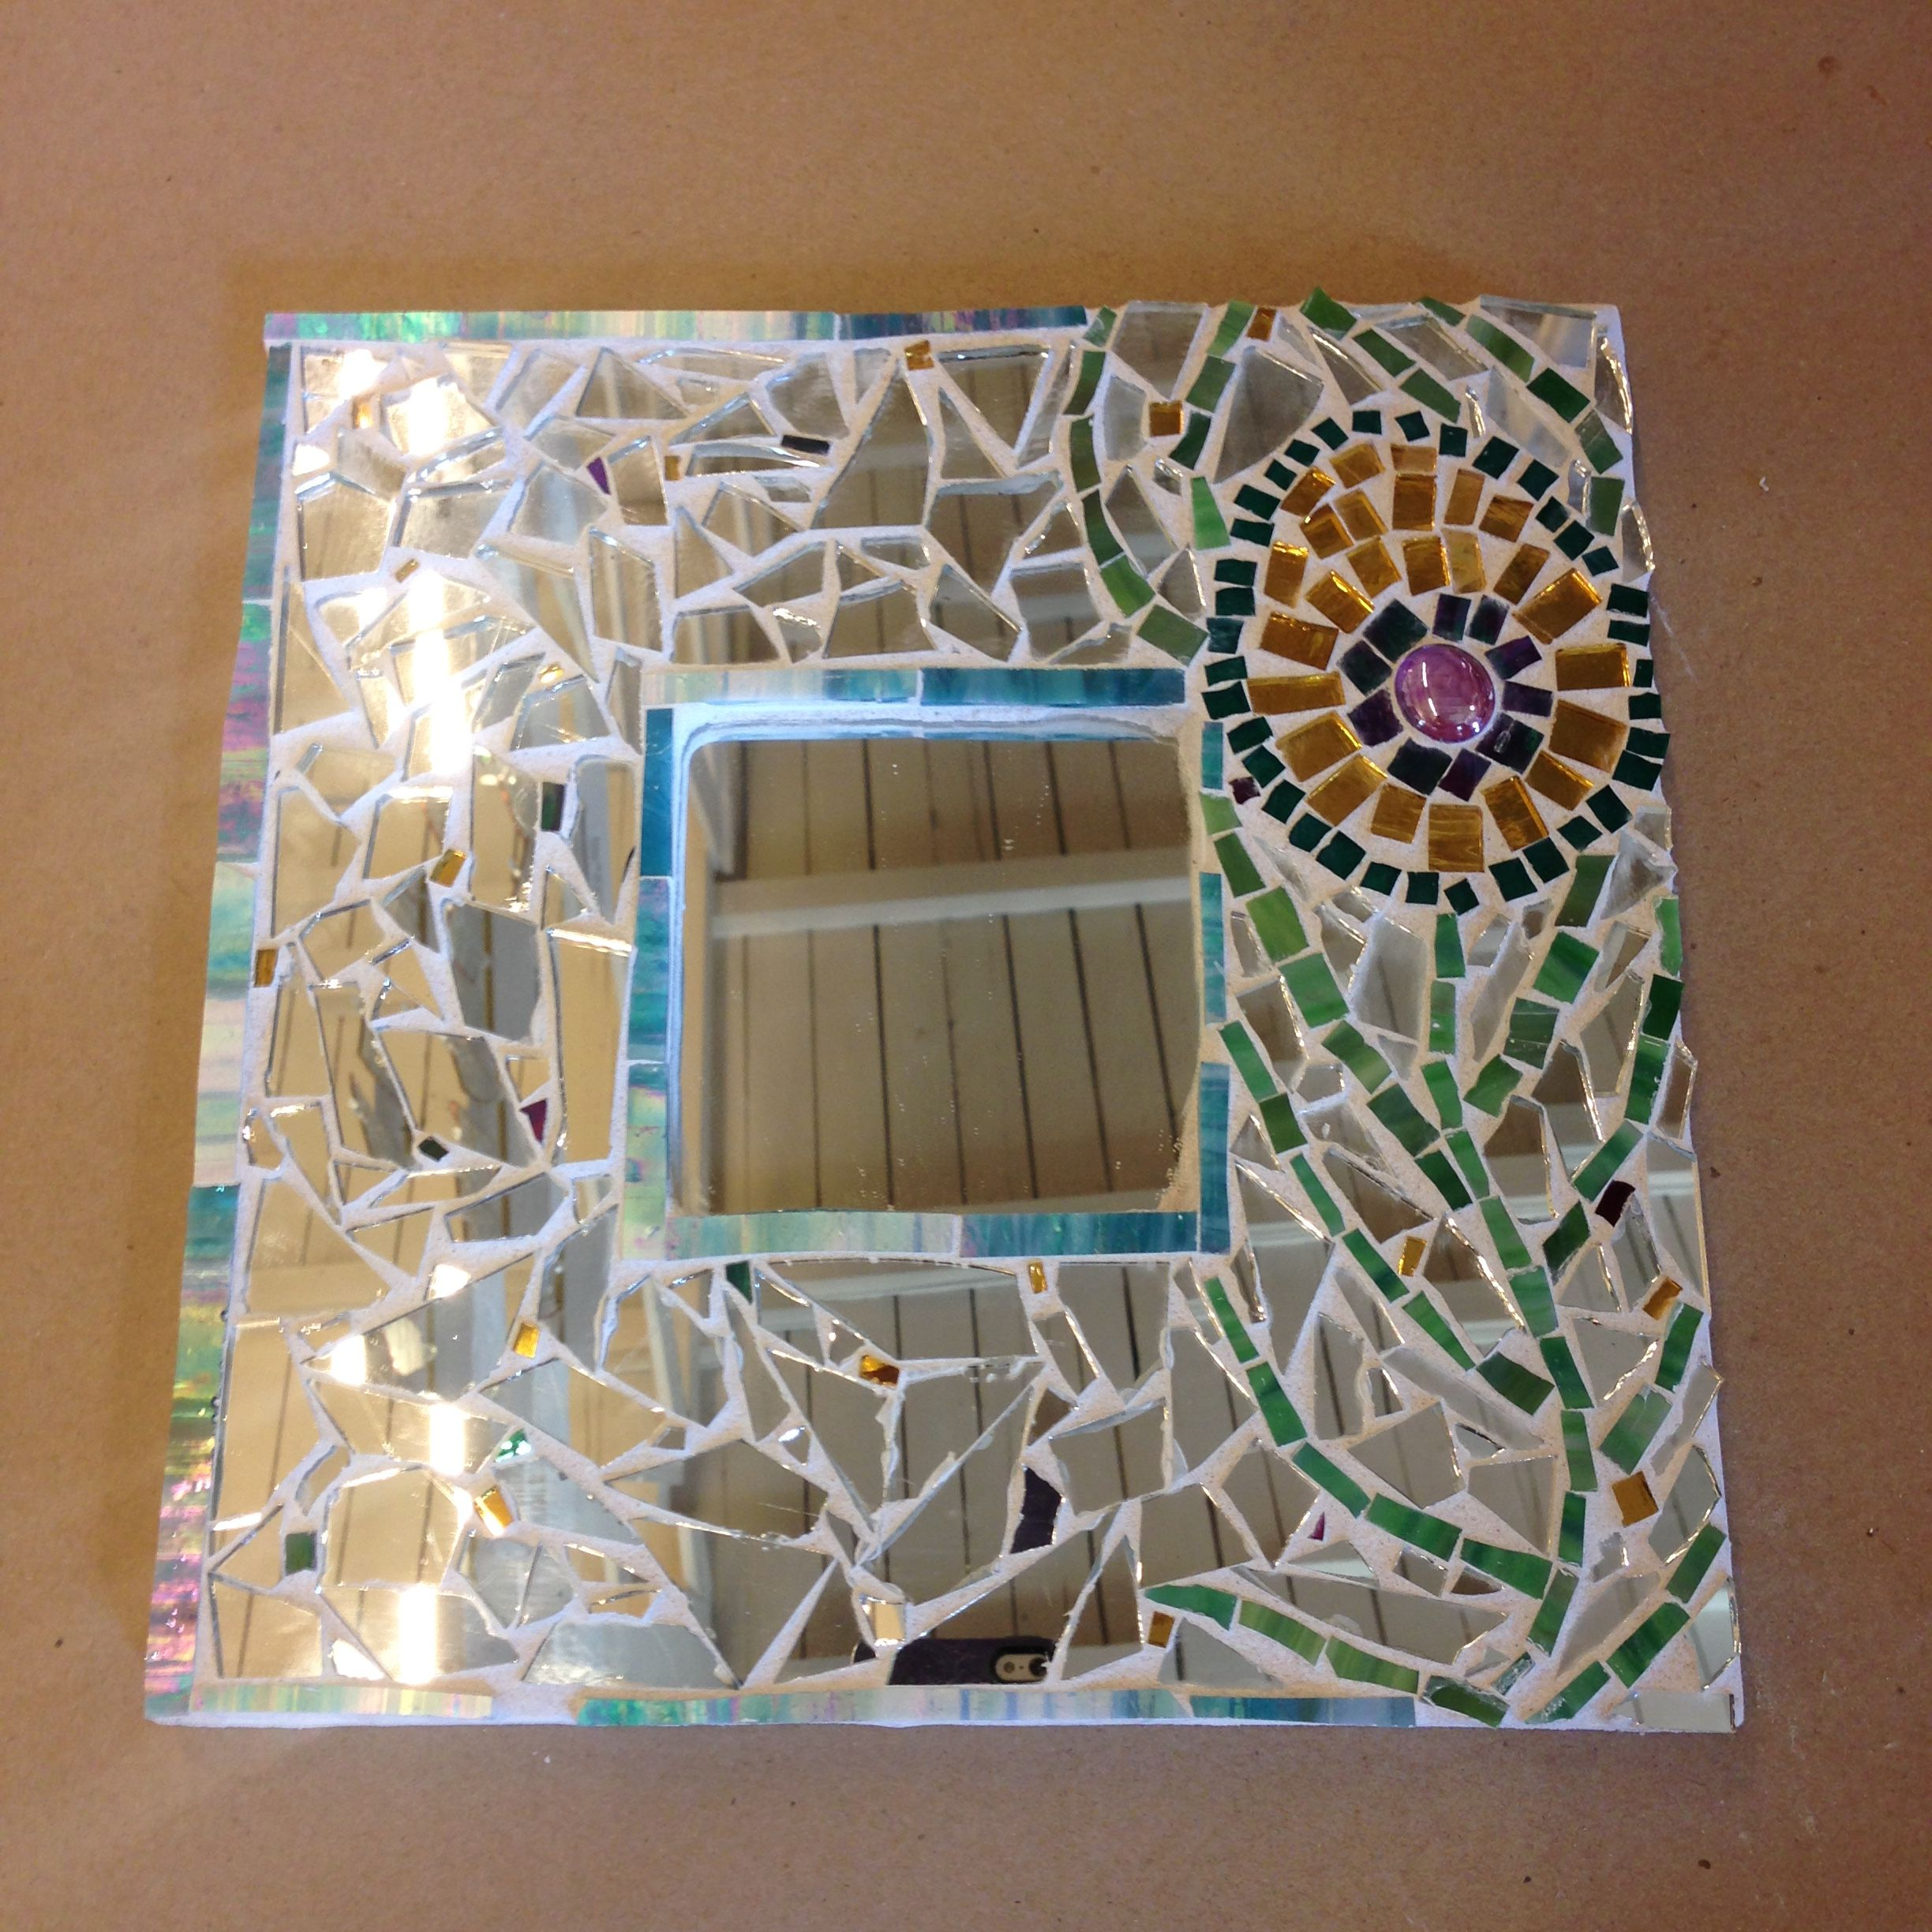 Mosaic flower mirror using mirrors and colored glass